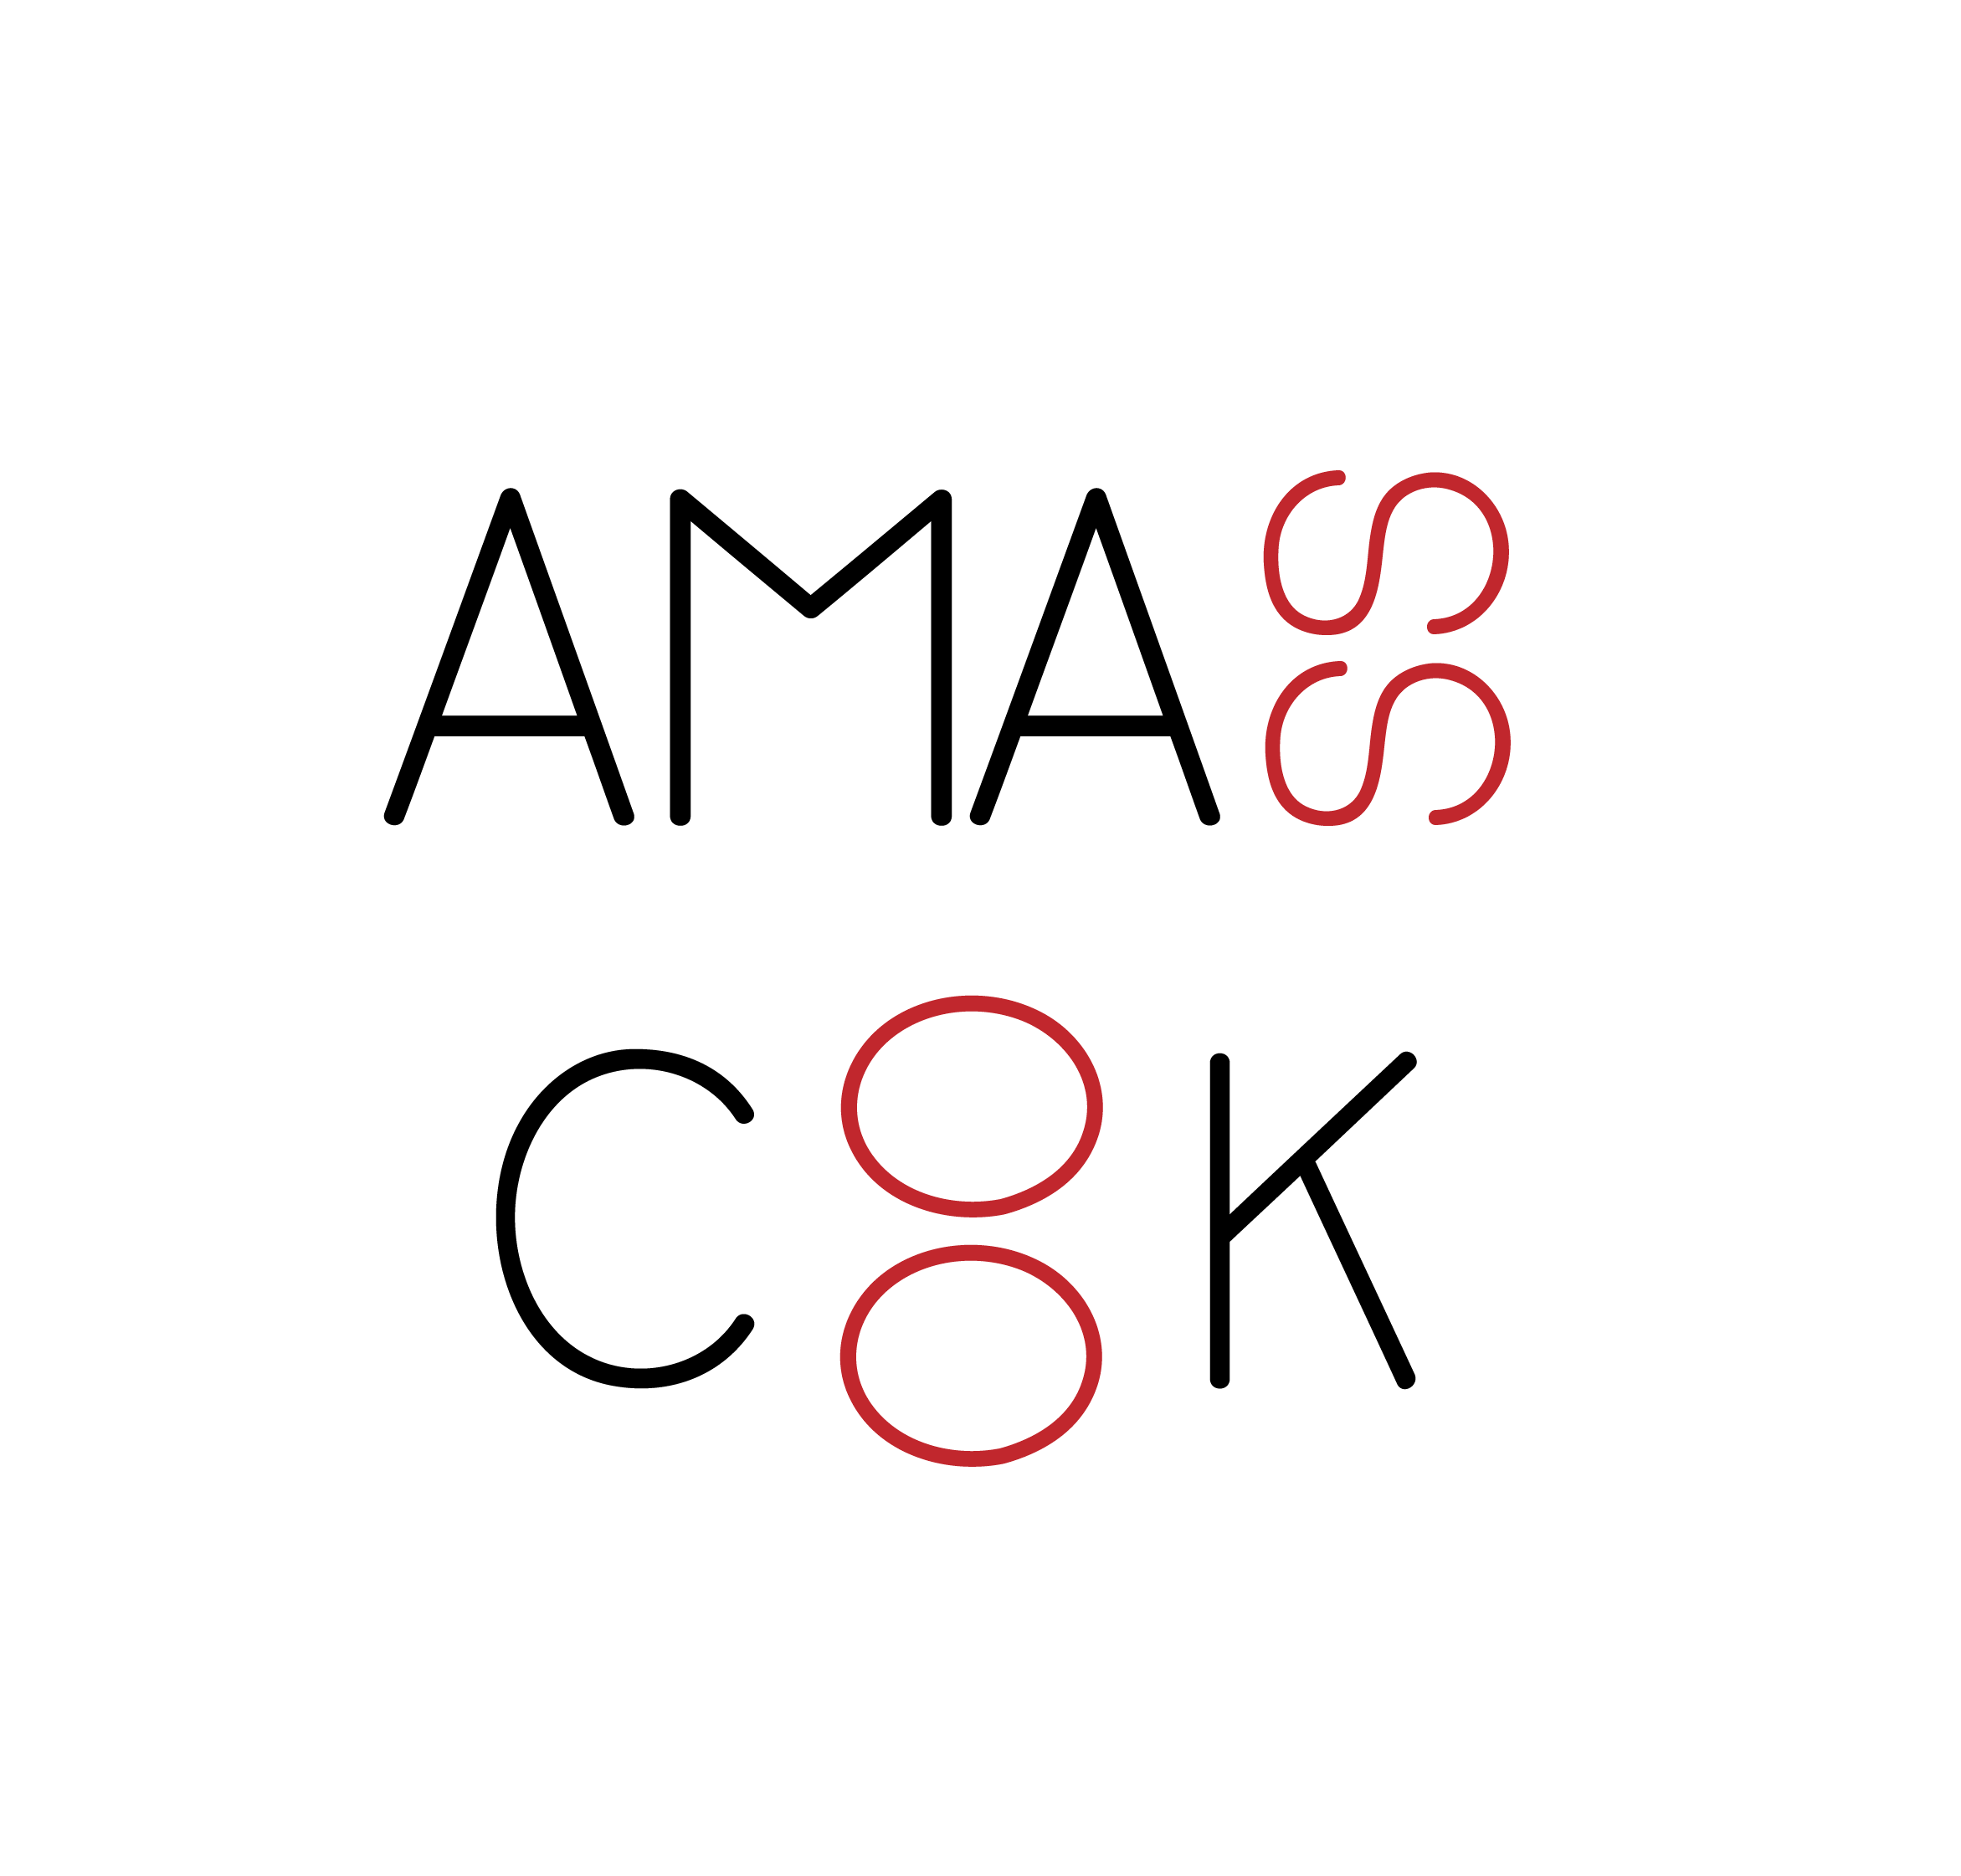 Amass. Cook. Tales about Portuguese food and wine